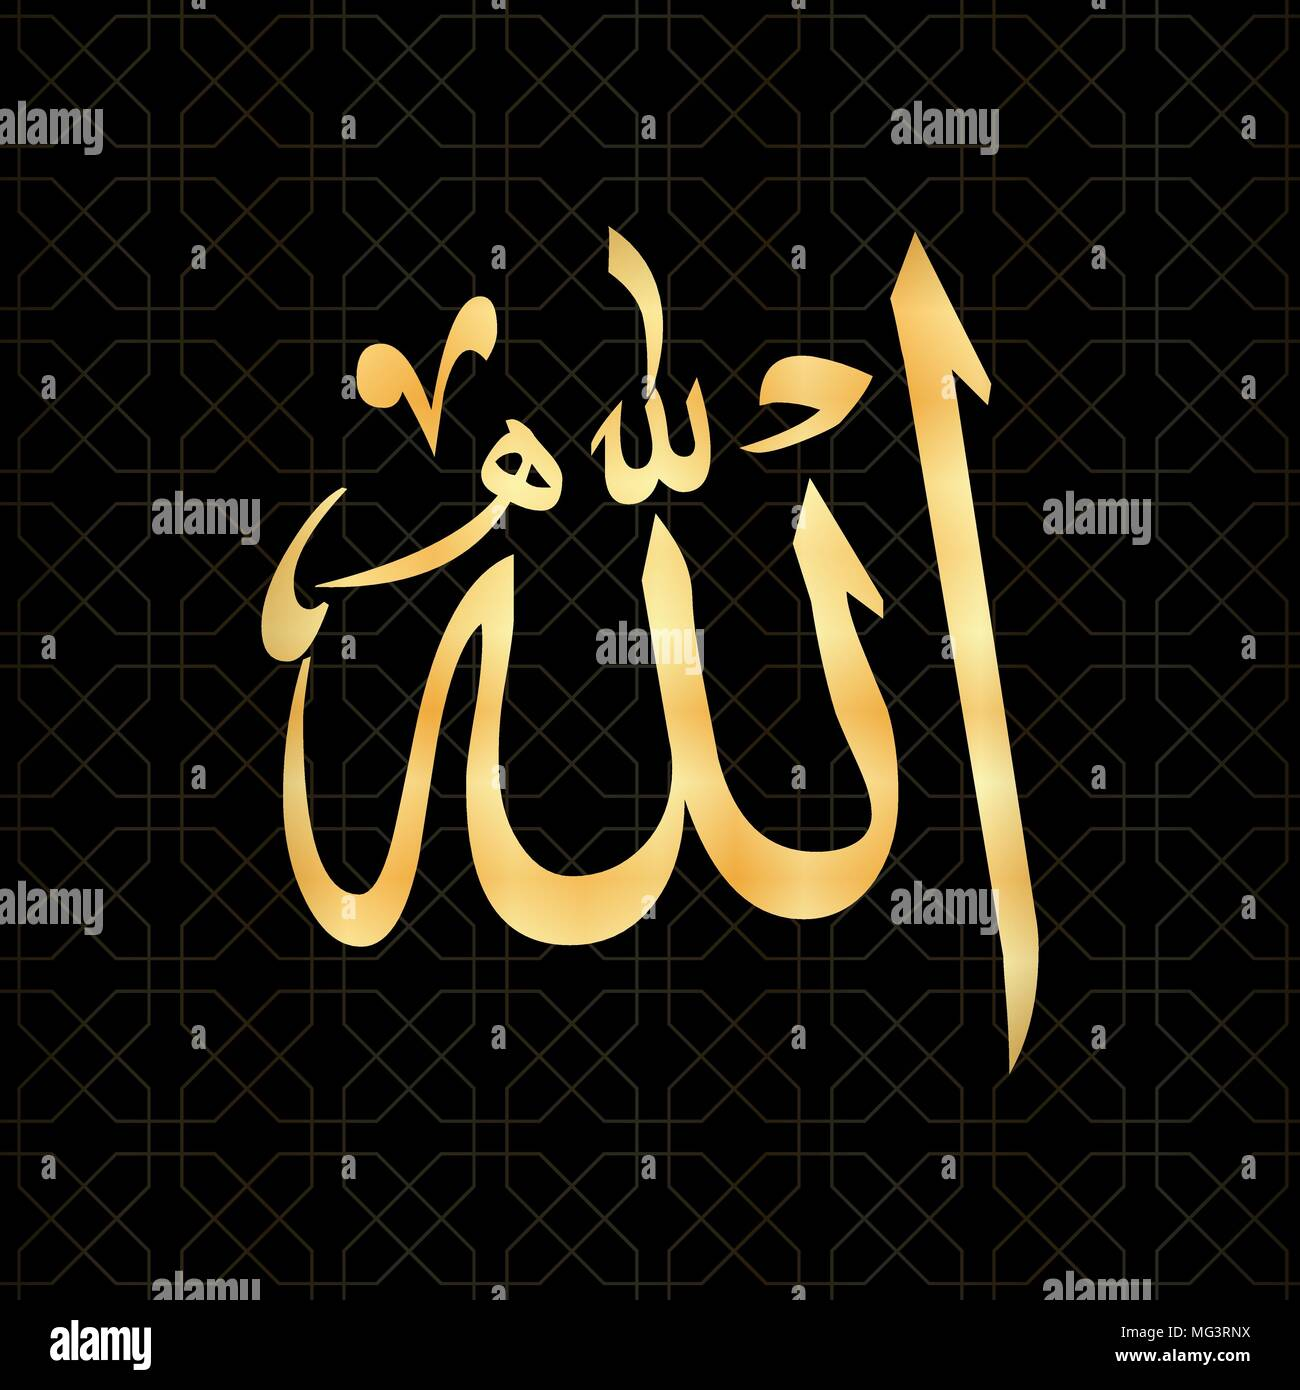 Islamic Calligraphy Allah Can Be Used For The Design Of Holidays In